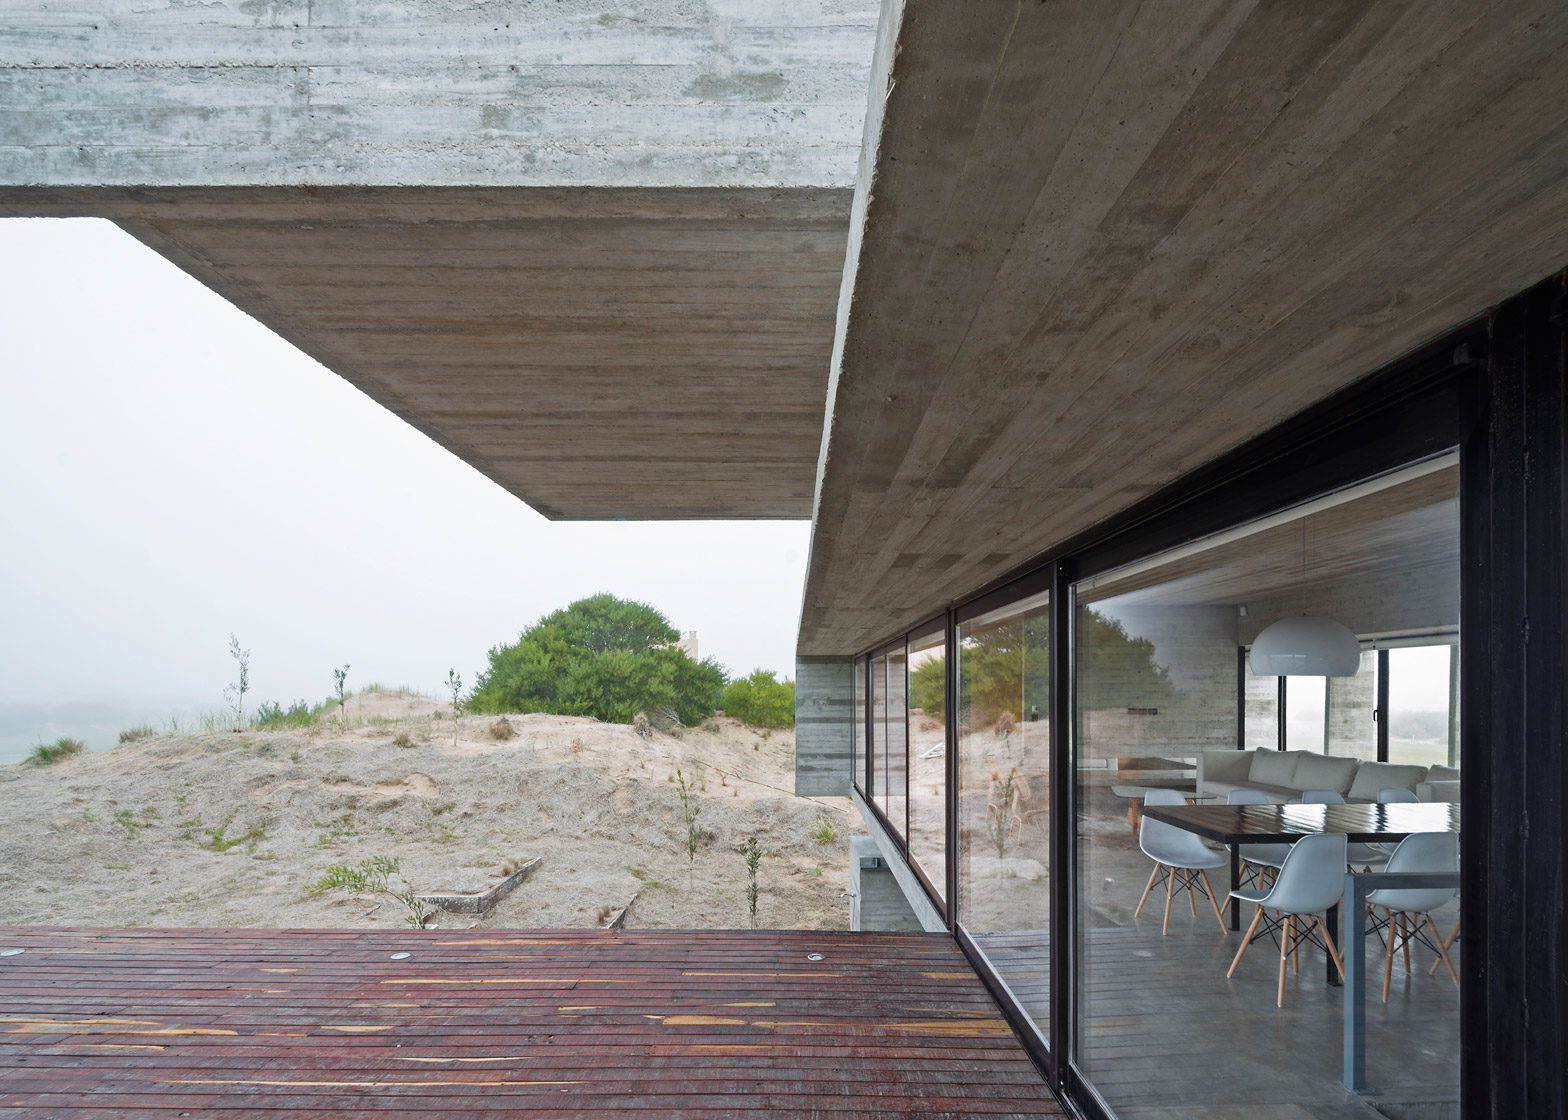 concrete houseluciano kruk stands on seaside golf course